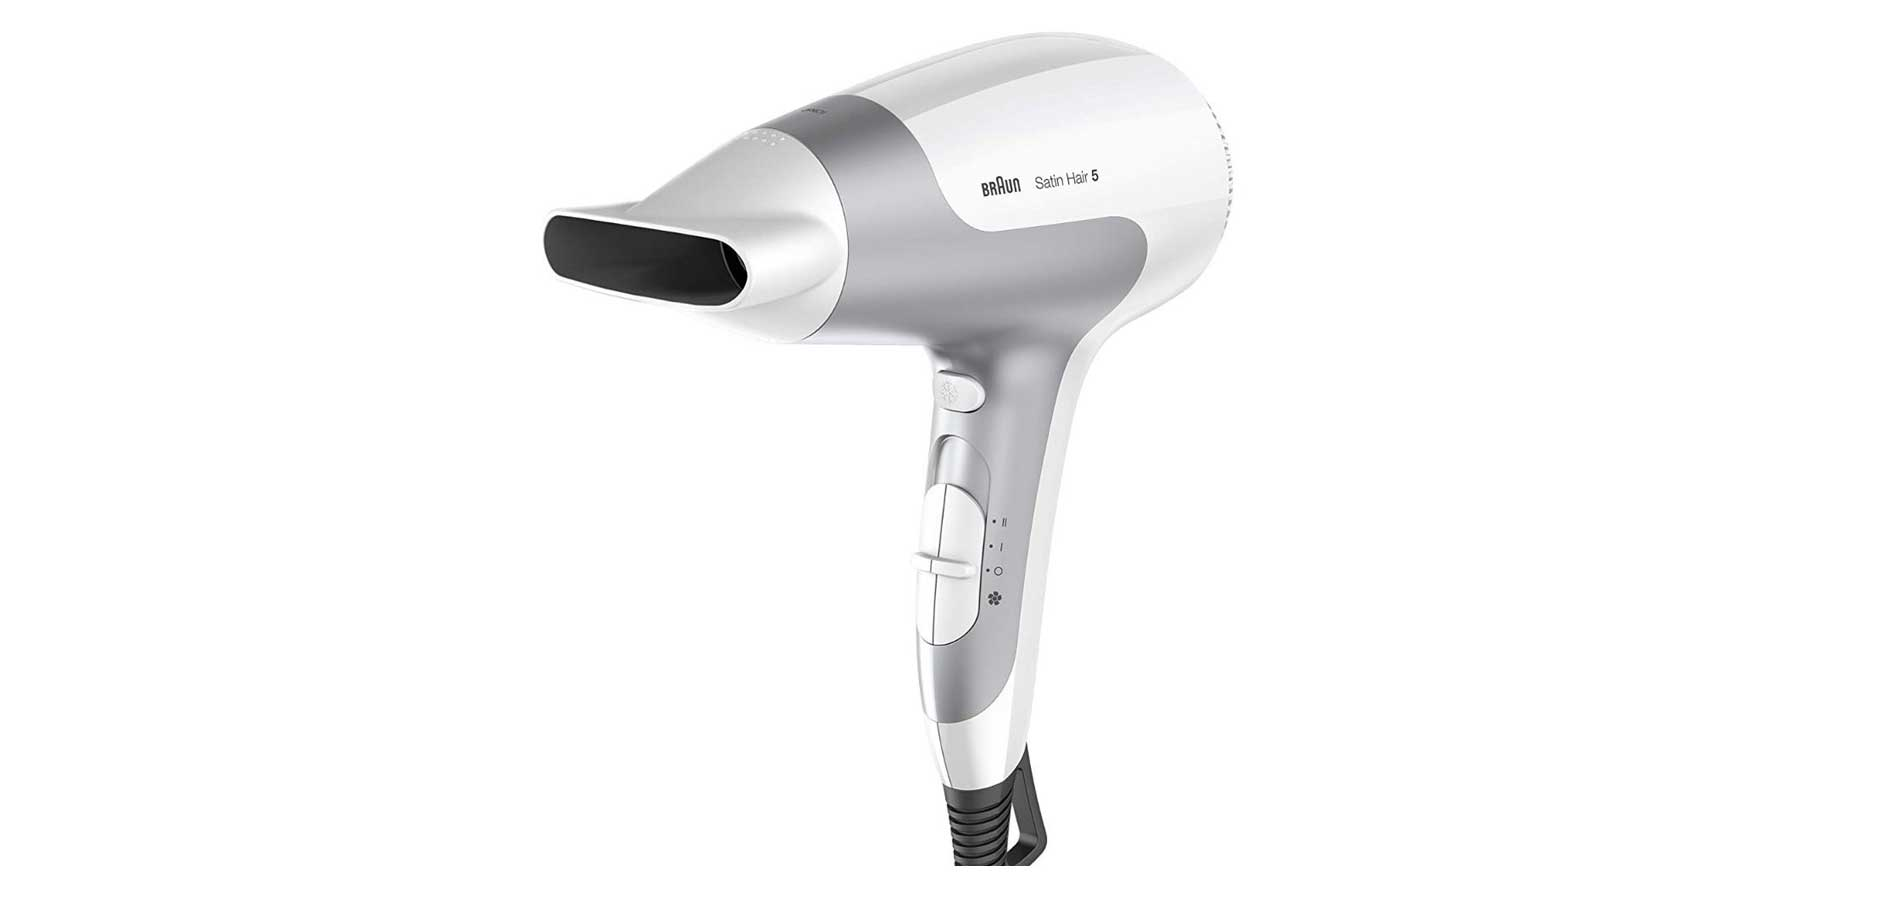 Best Black Friday Hair Dryer Deals